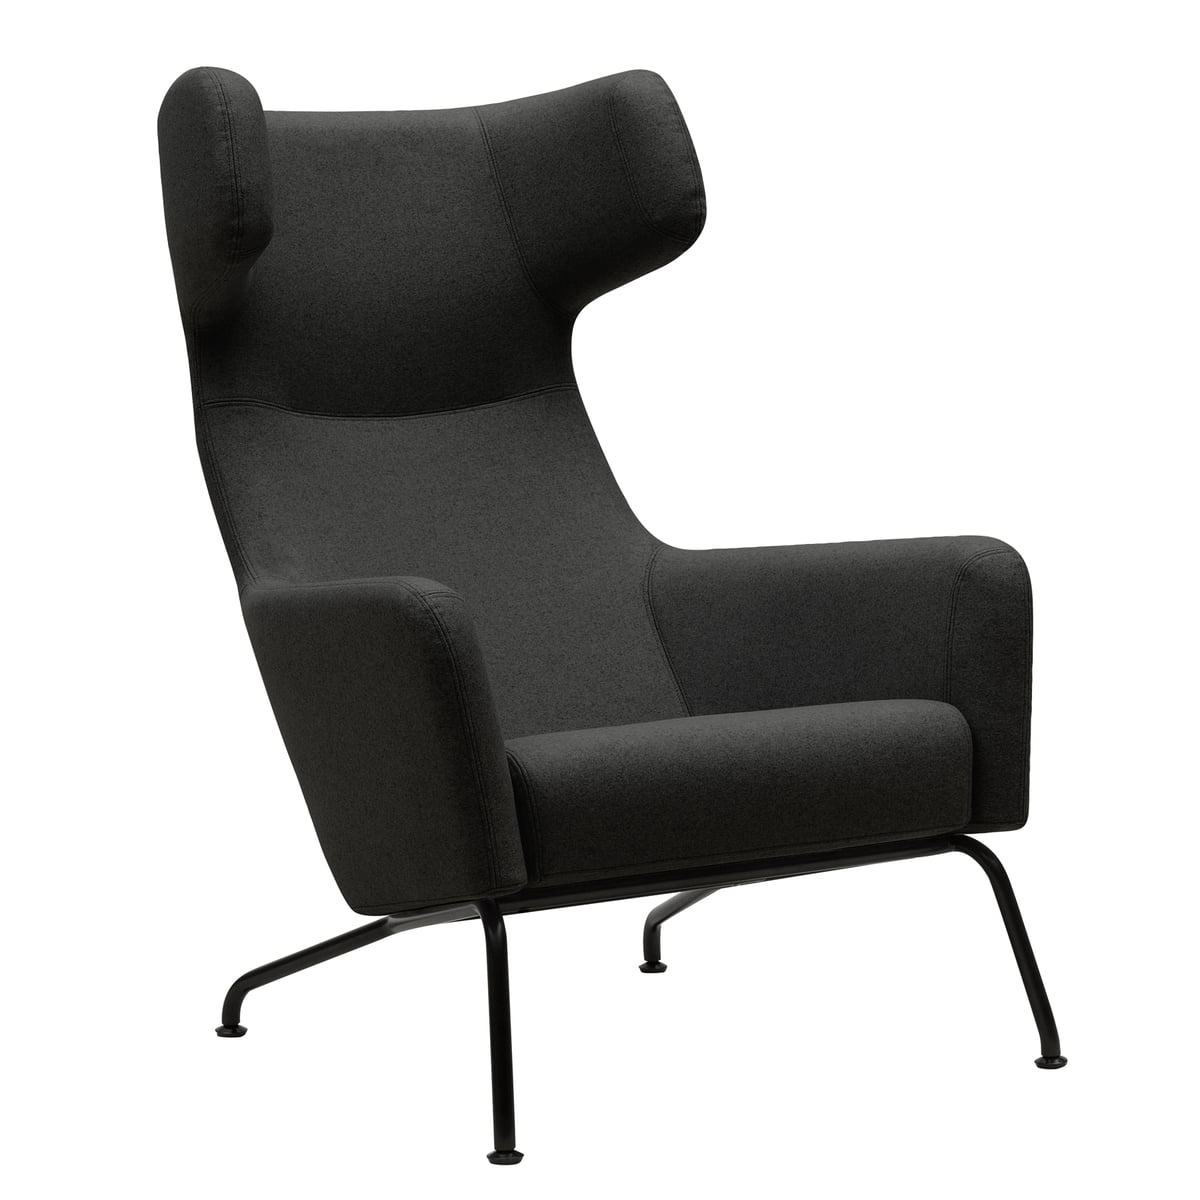 Ohrensessel moderne form  The Havana Armchair by Softline in the shop